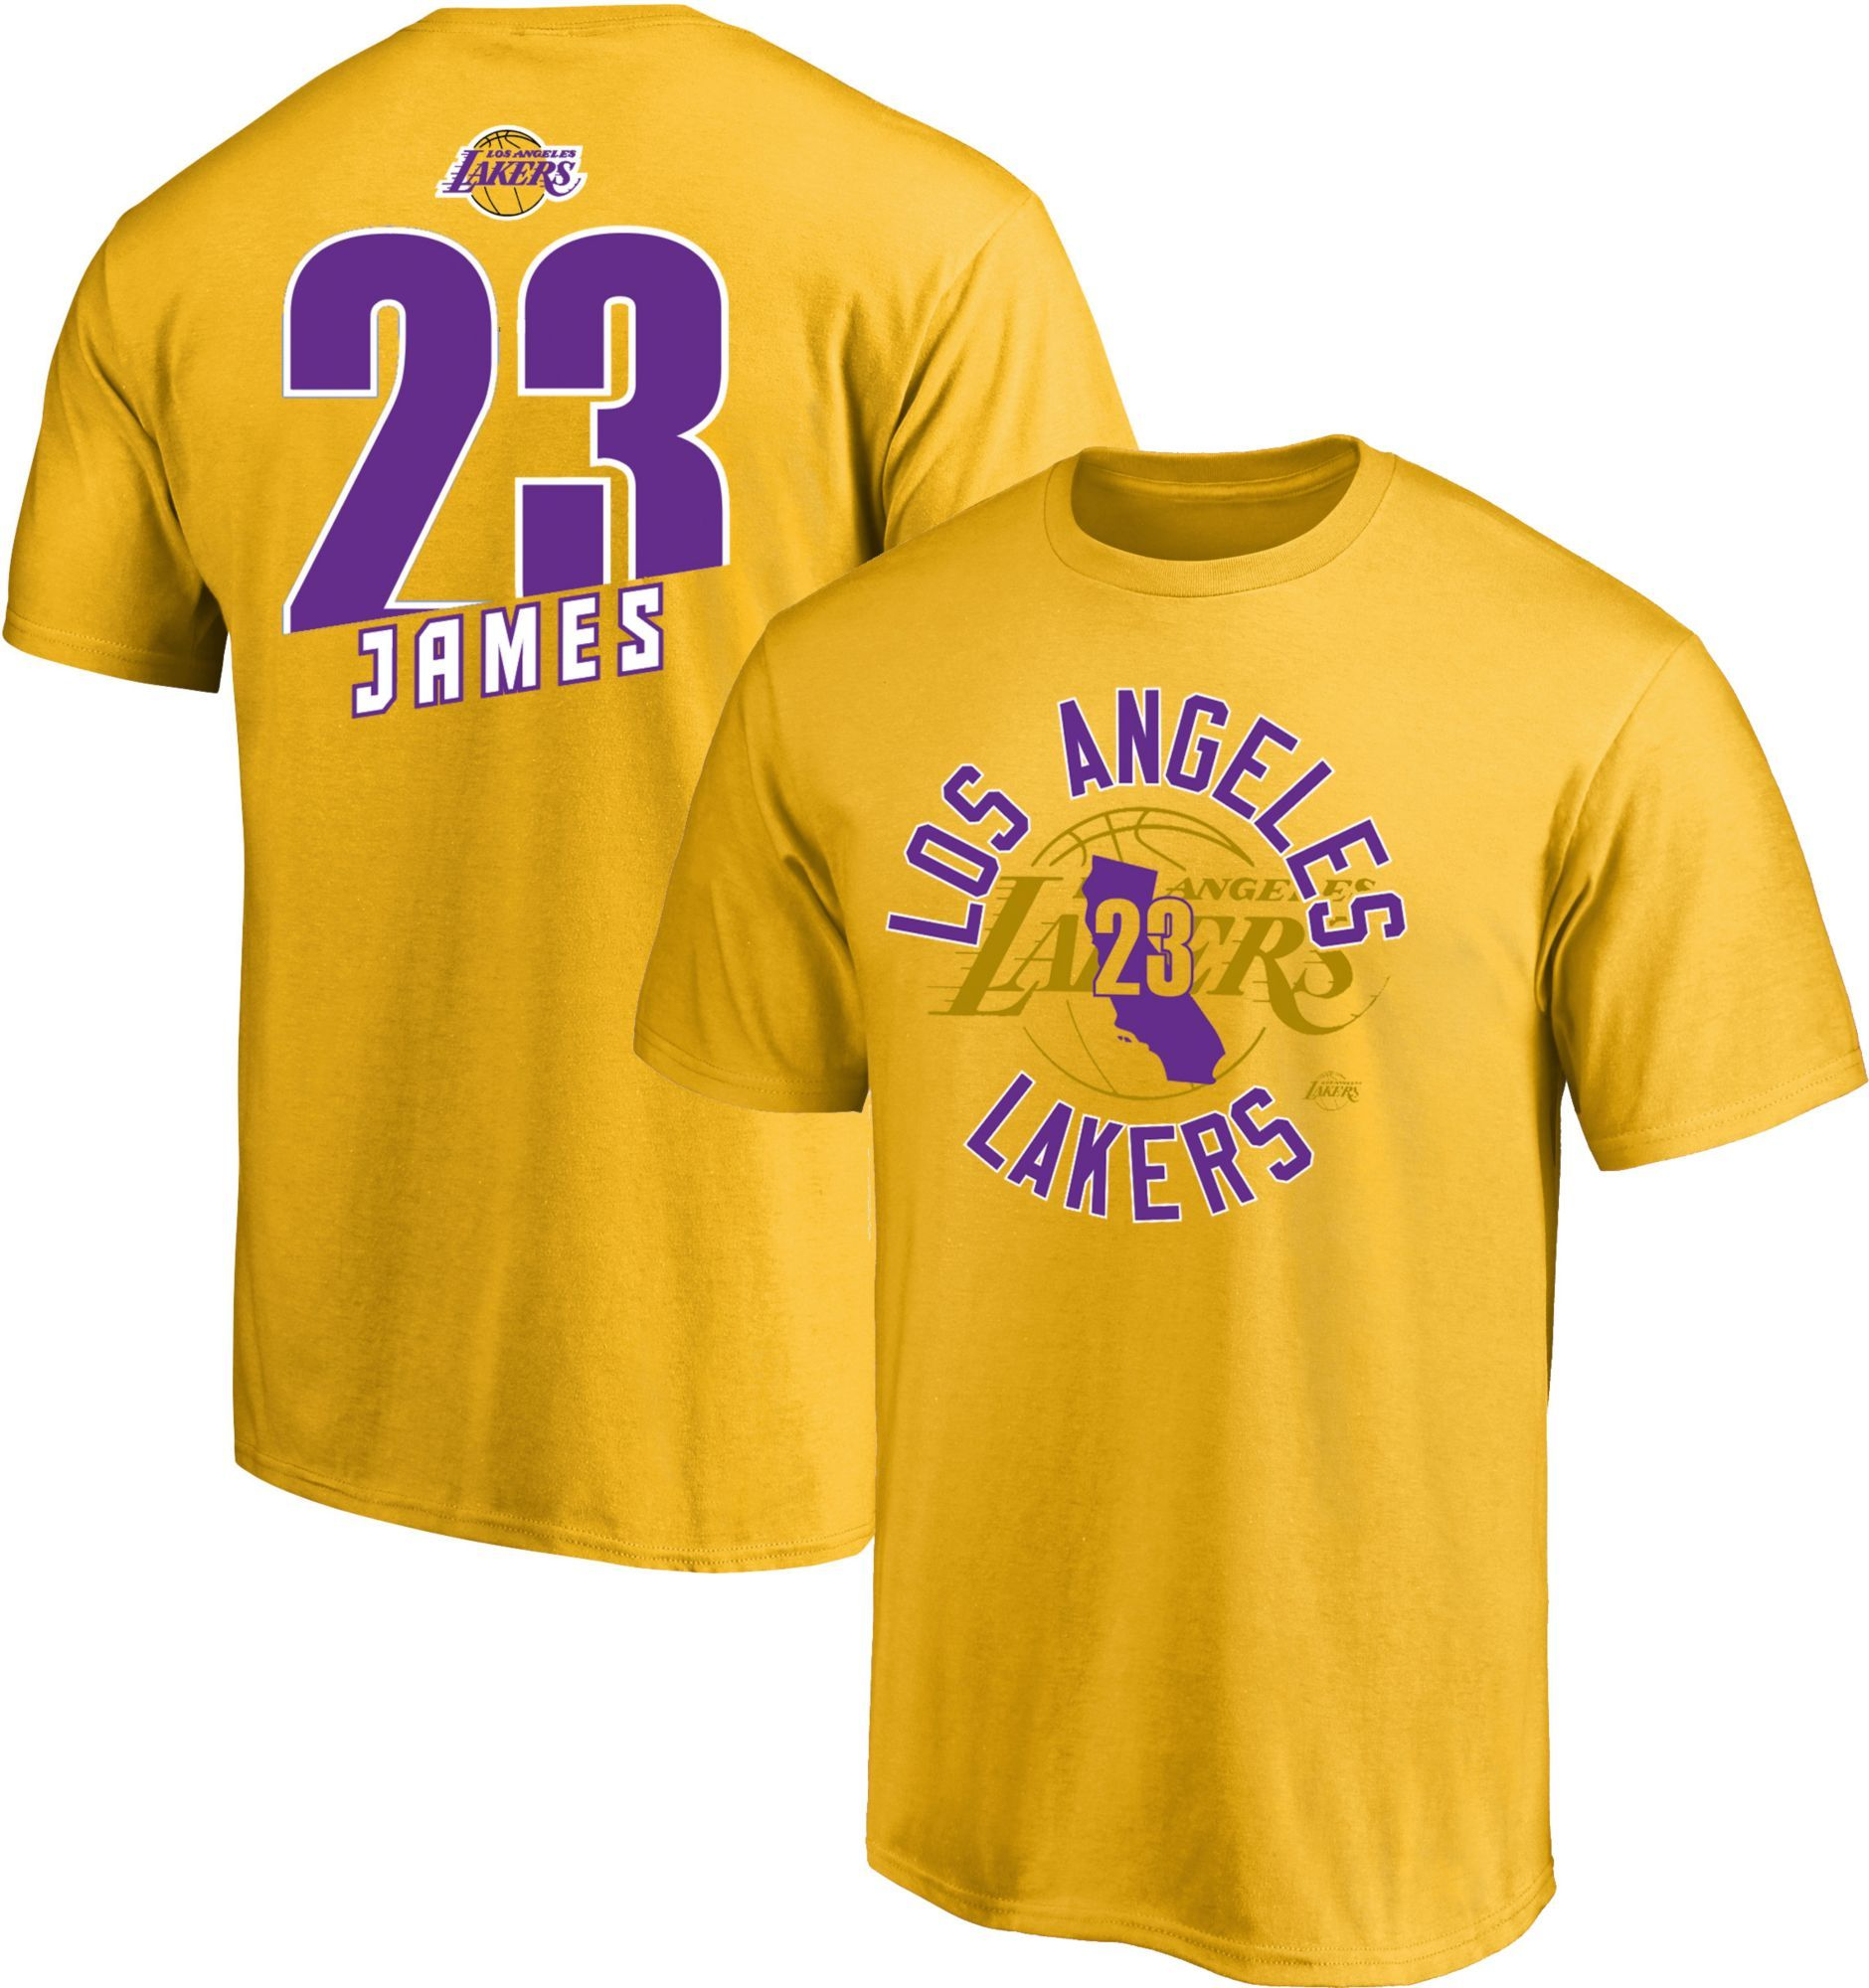 f4659f412 Majestic Men s Los Angeles Lakers LeBron James  23 Gold T-Shirt ...